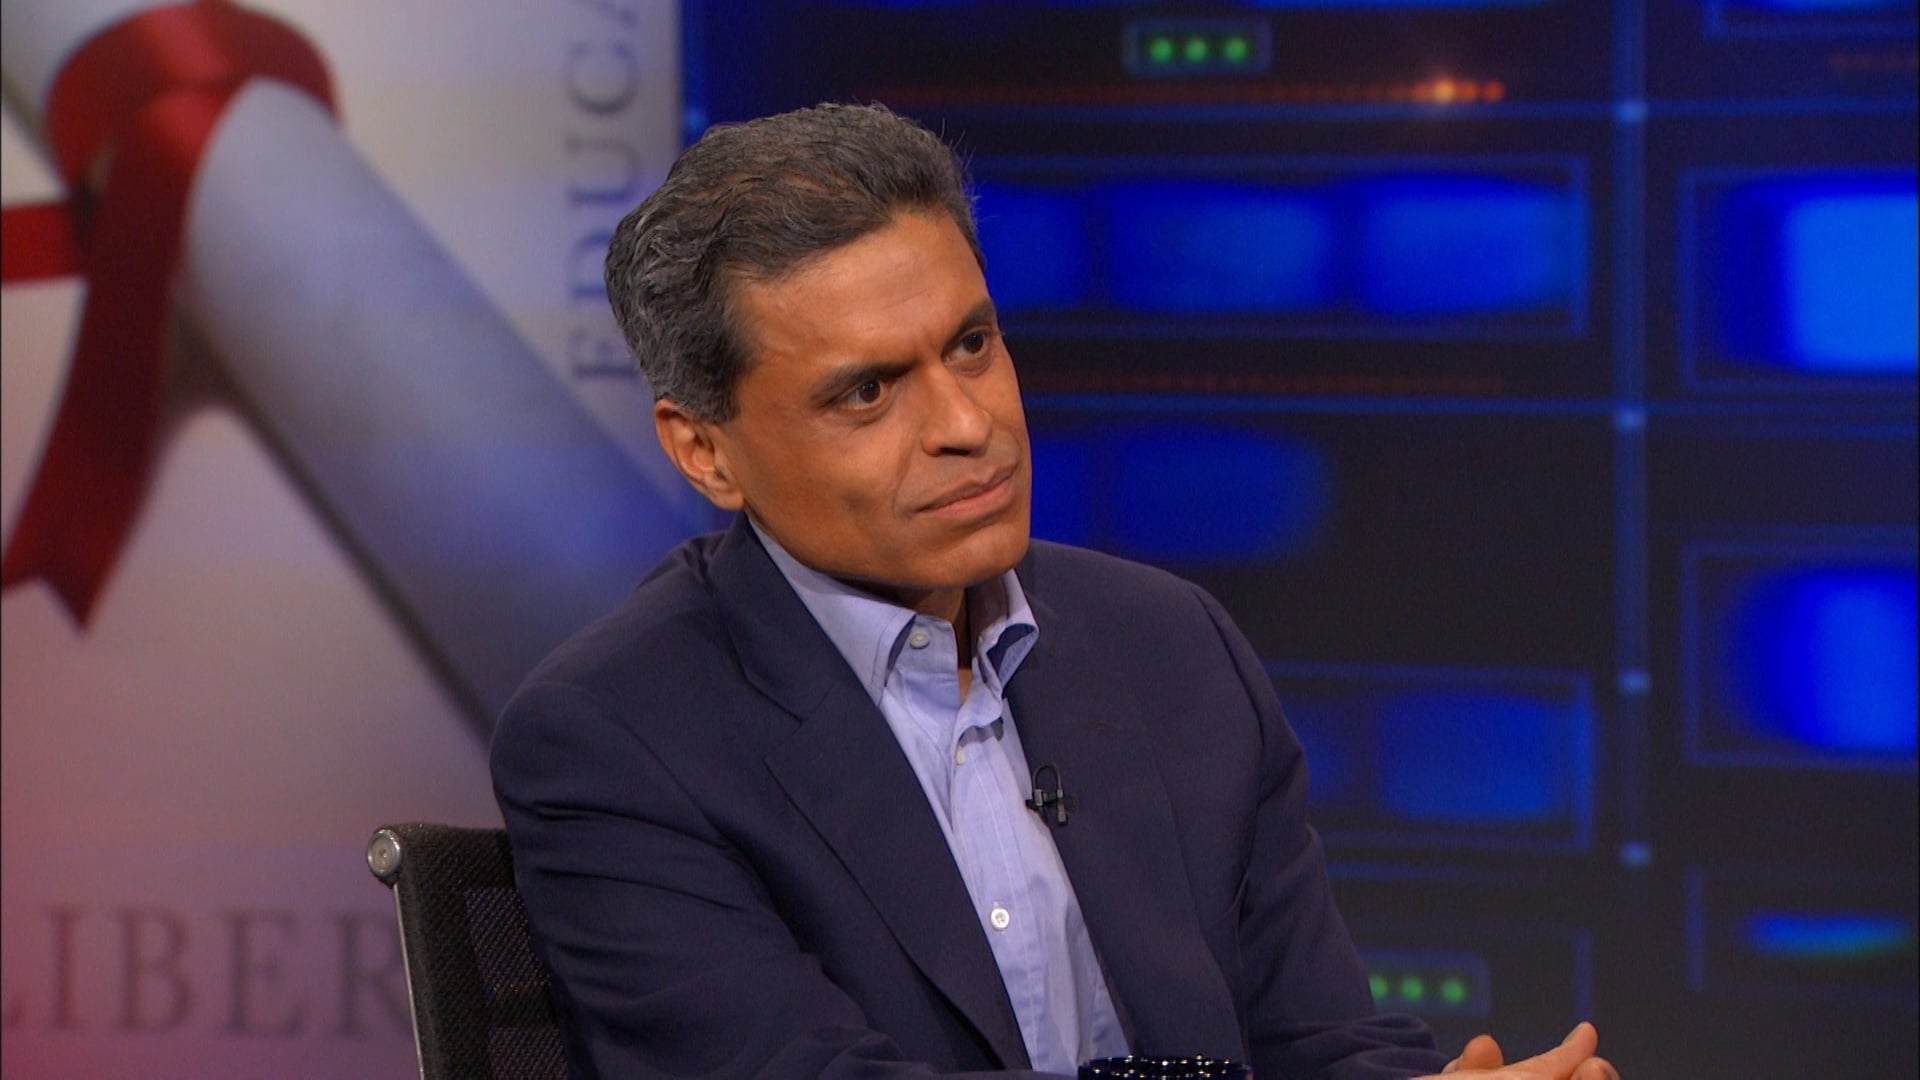 The Daily Show with Trevor Noah Season 20 :Episode 89  Fareed Zakaria